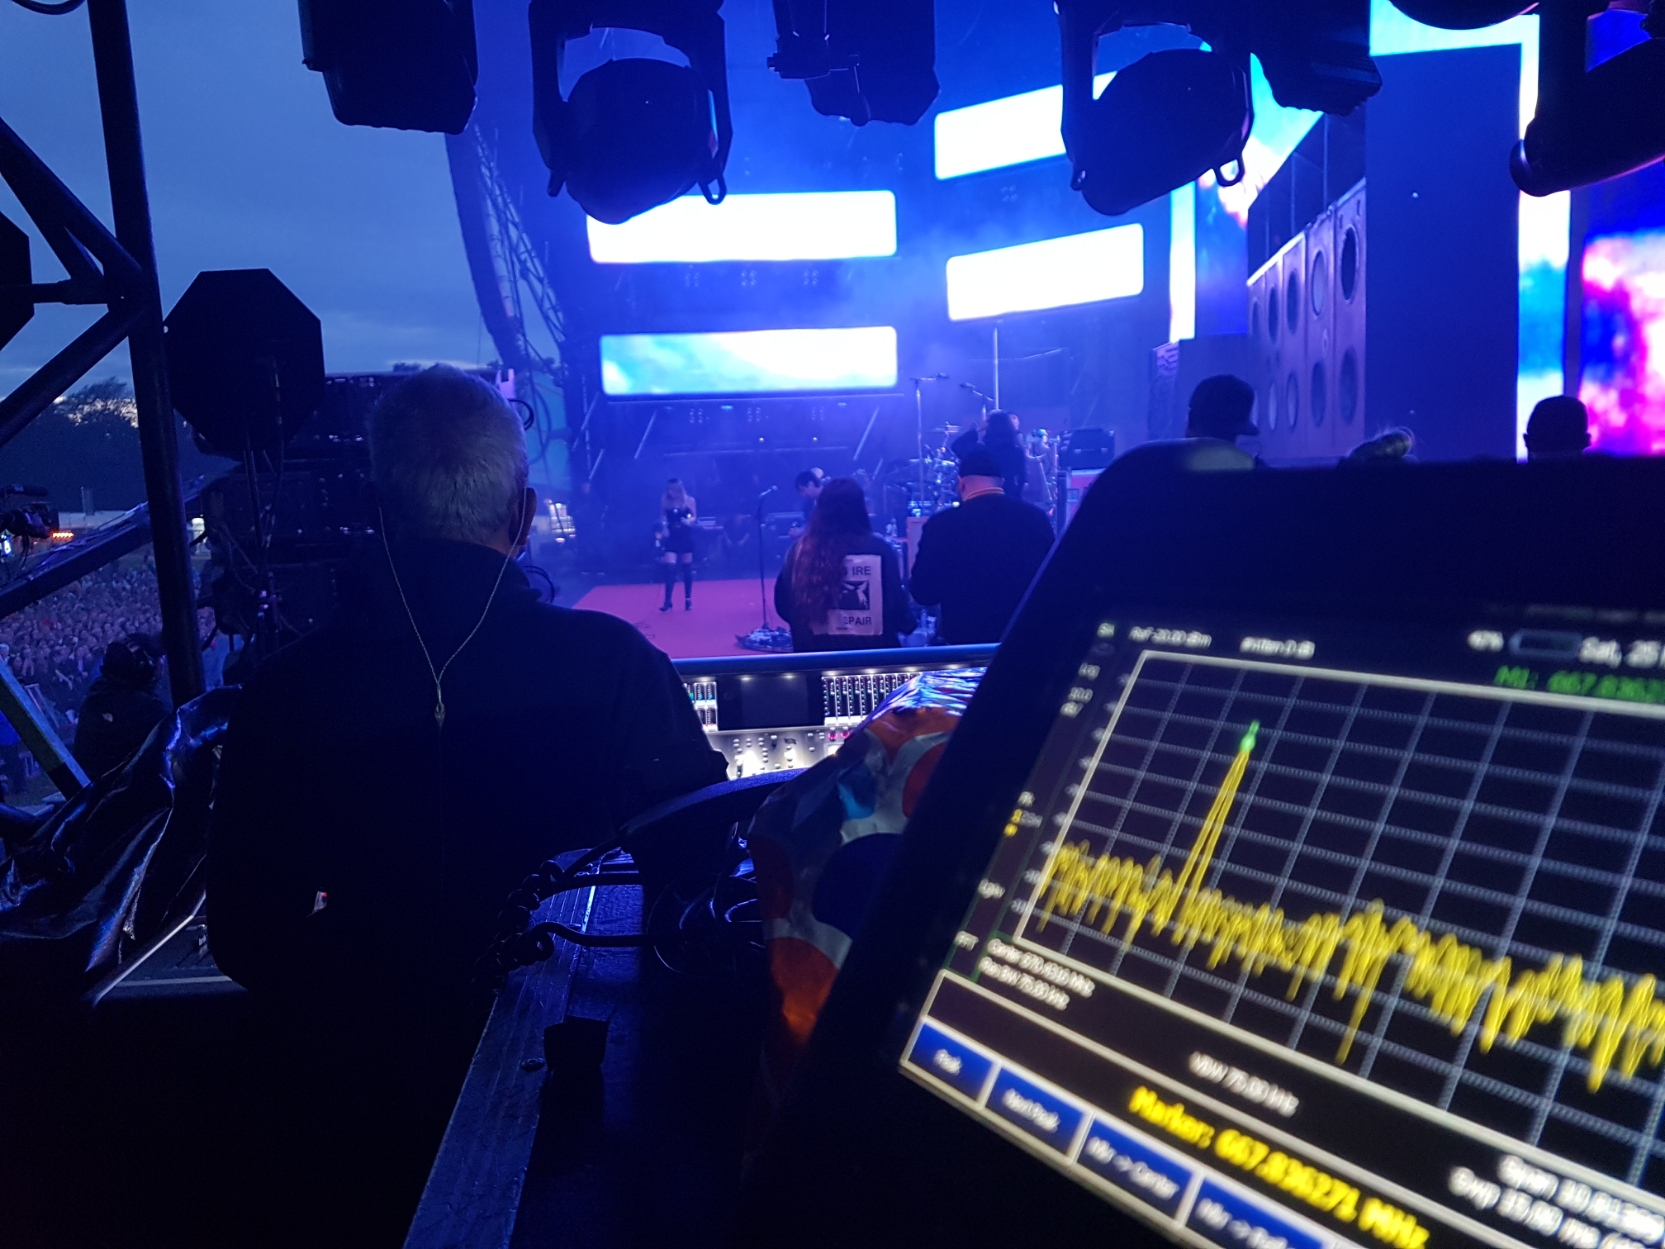 programme-making and special events equipment at a live music event